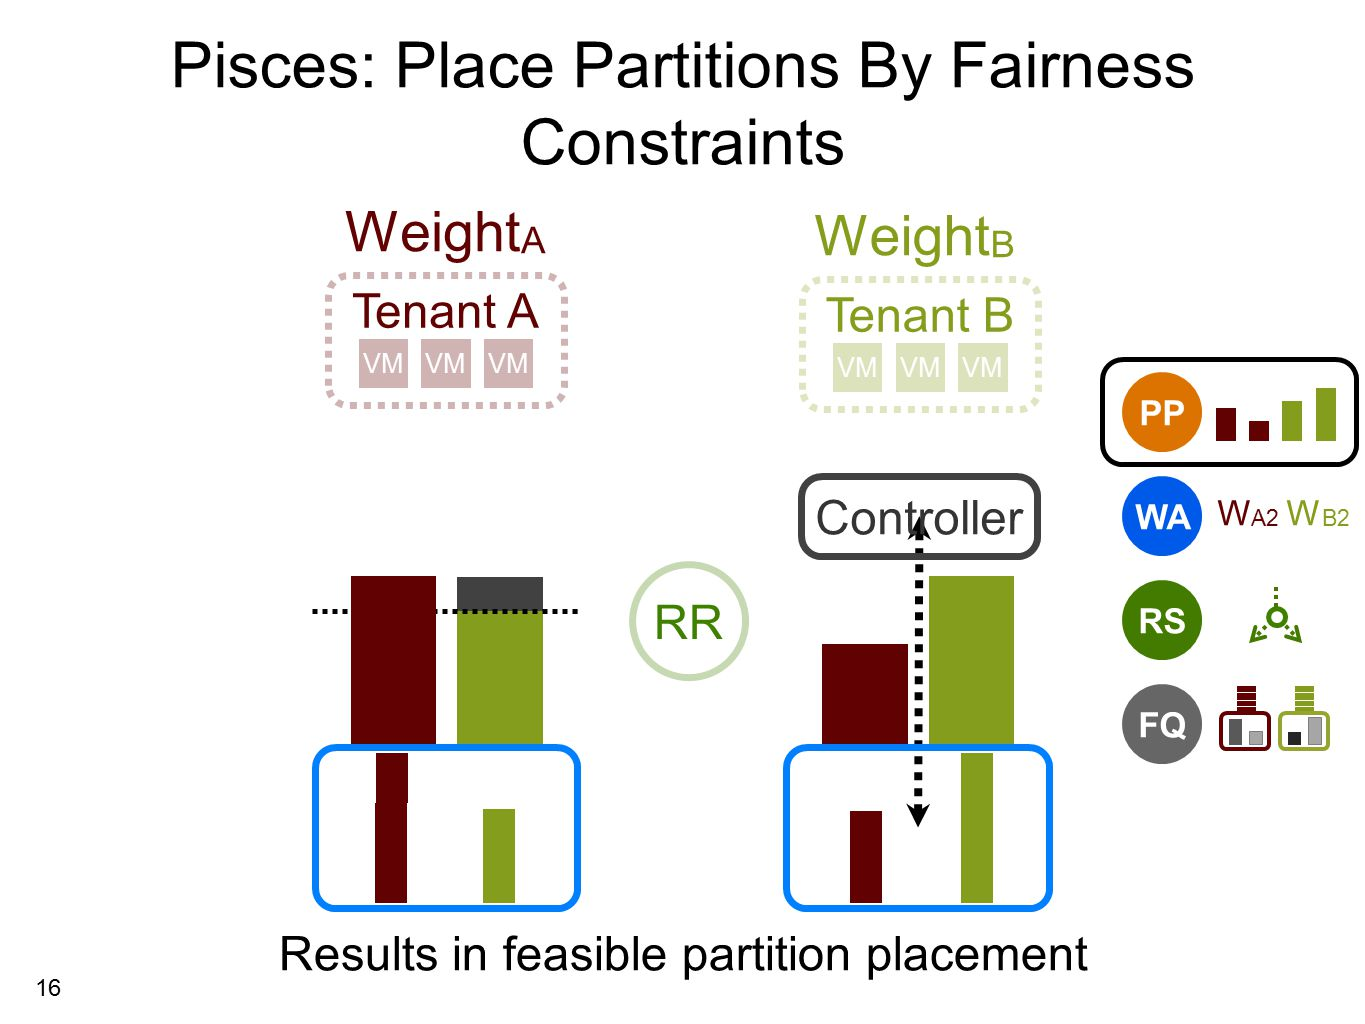 16 Pisces: Place Partitions By Fairness Constraints Tenant A Tenant B VM Weight A Weight B PP Results in feasible partition placement RS FQ WA W A2 W